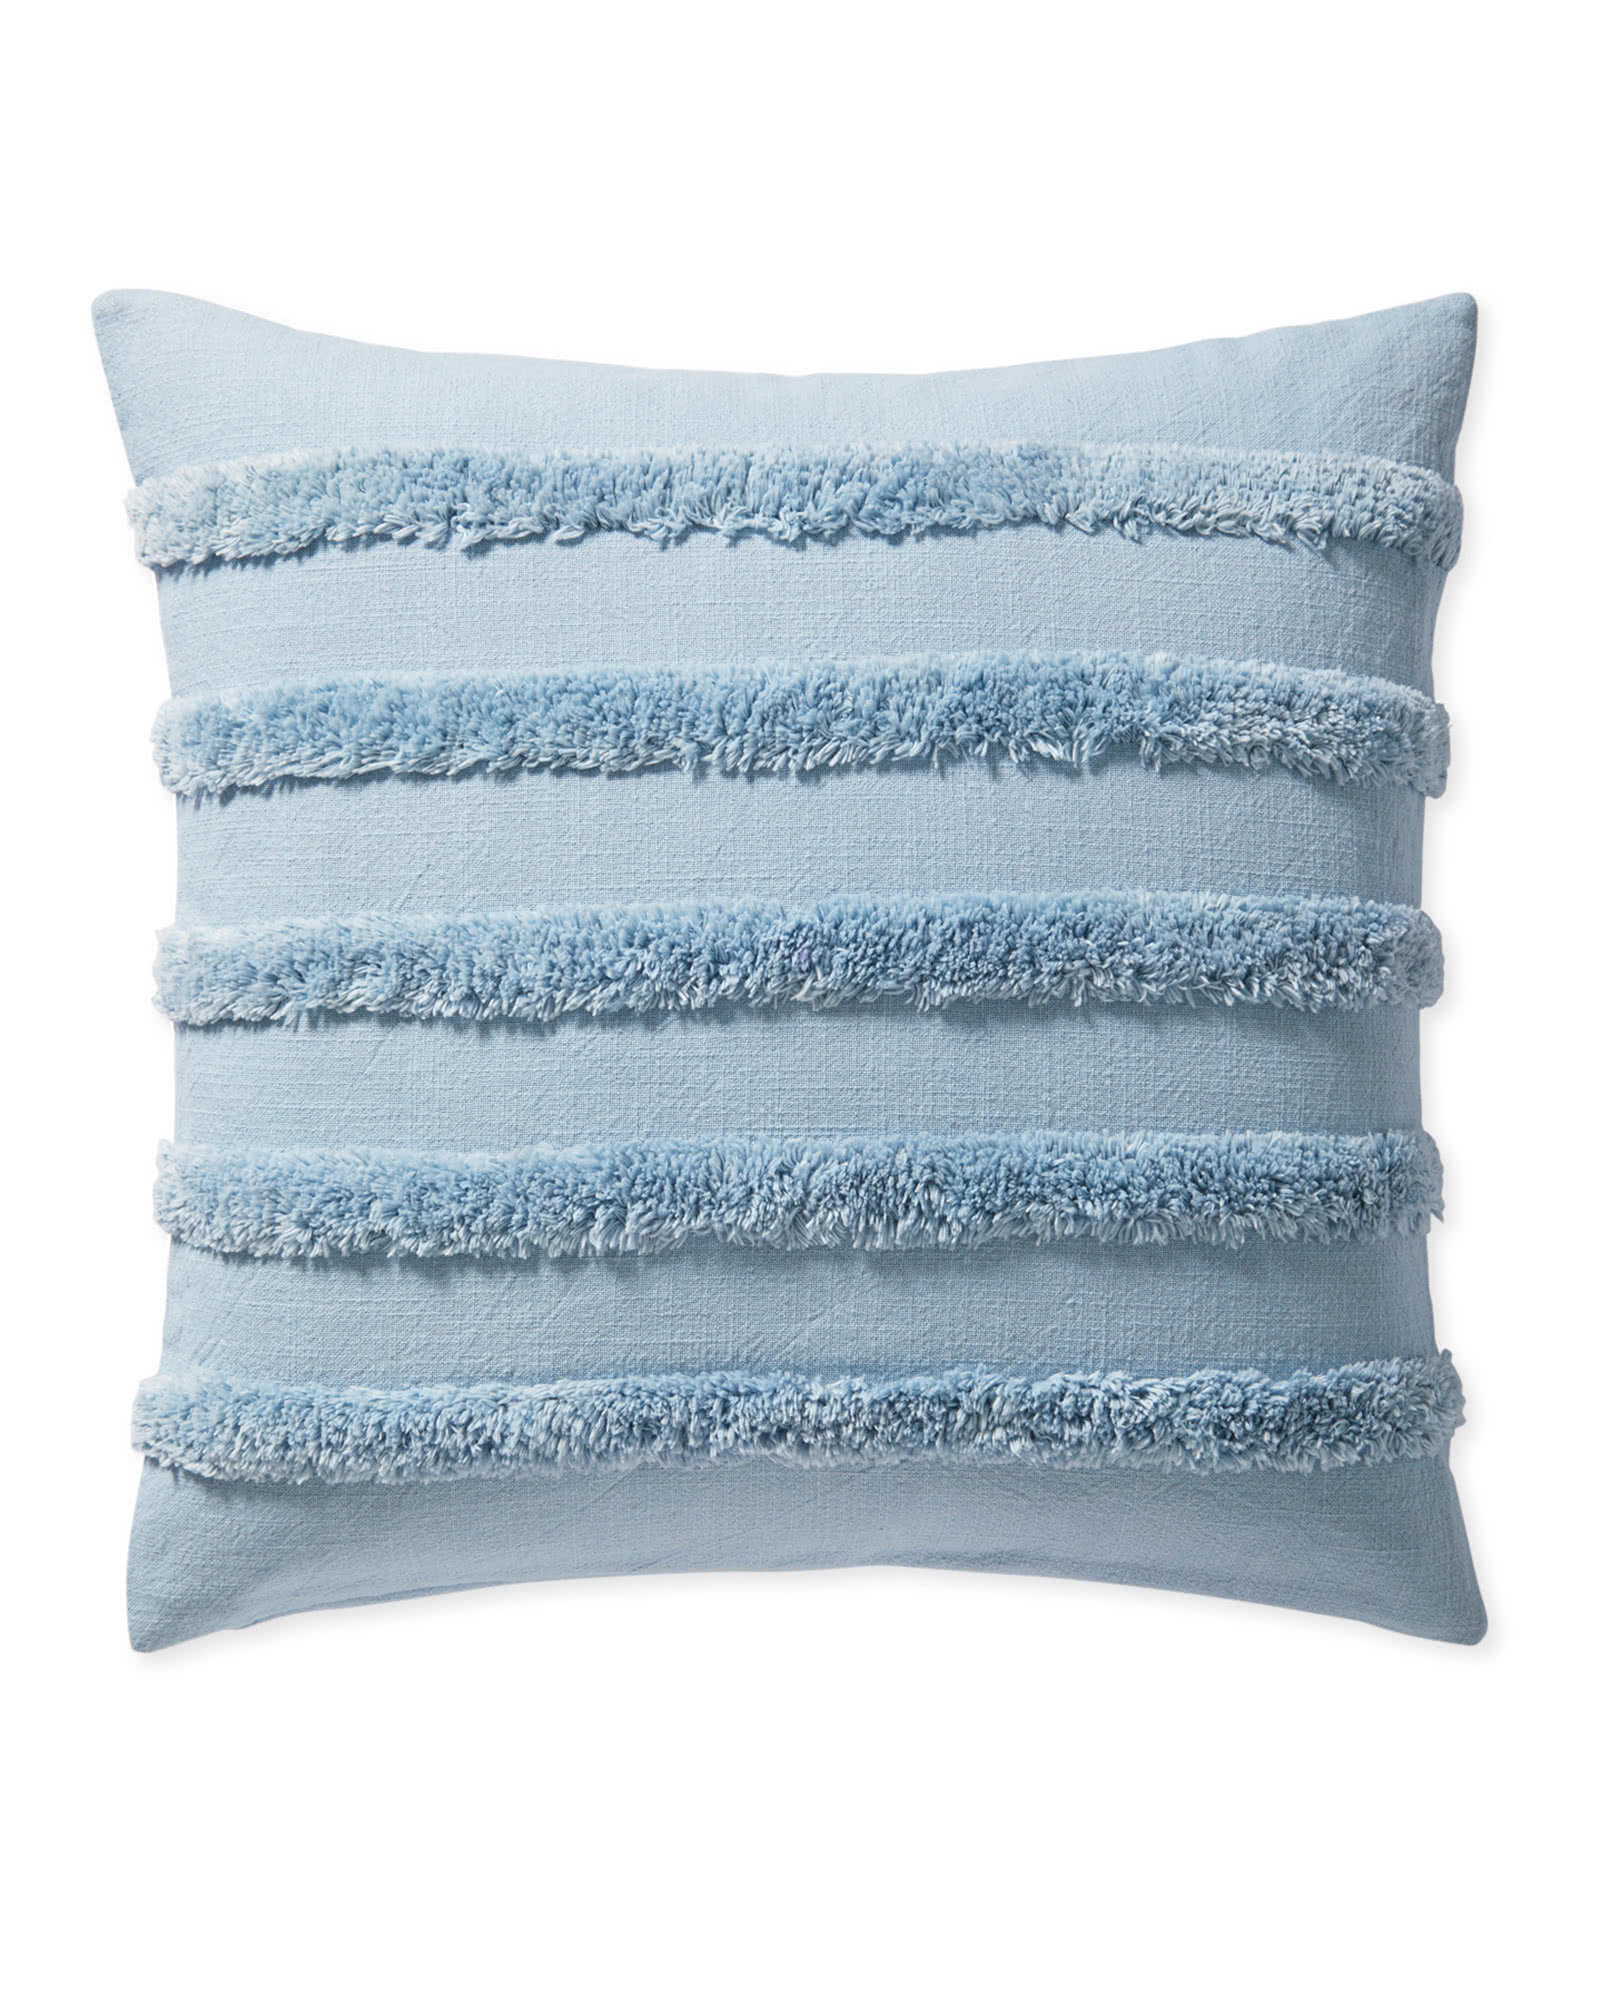 Cuesta Pillow Cover, Coastal Blue